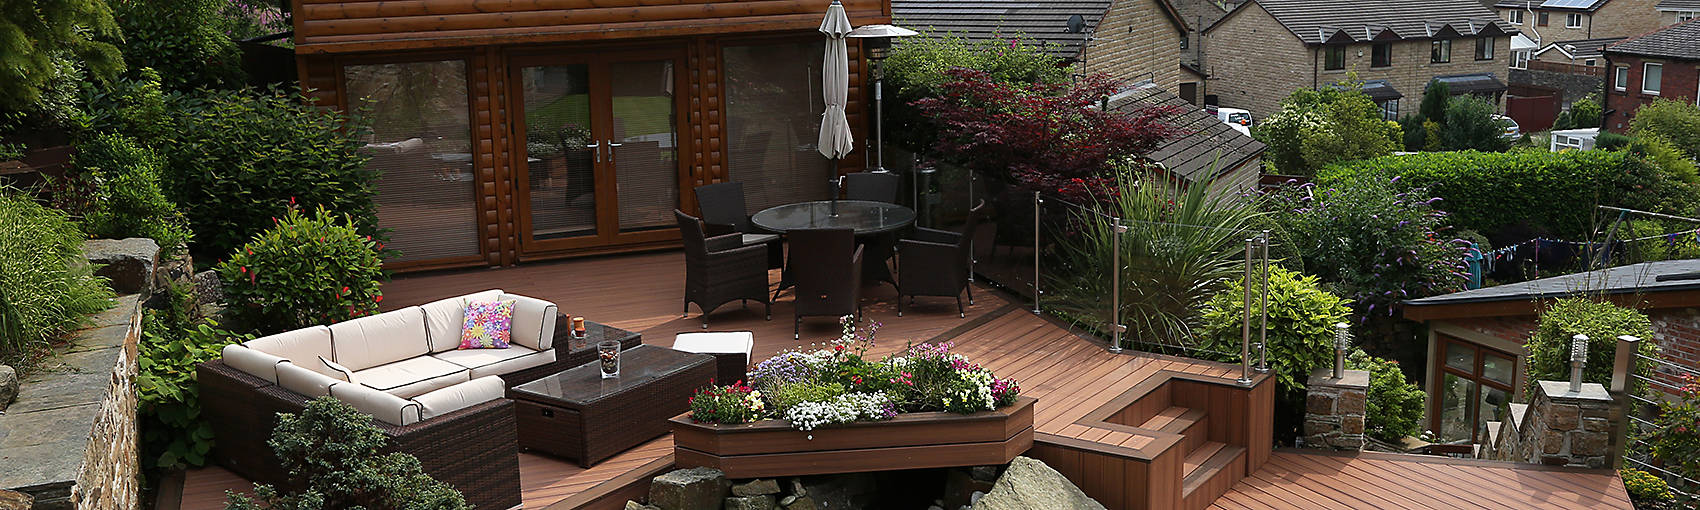 composite decking wpc u0026 wood alternative decking trex